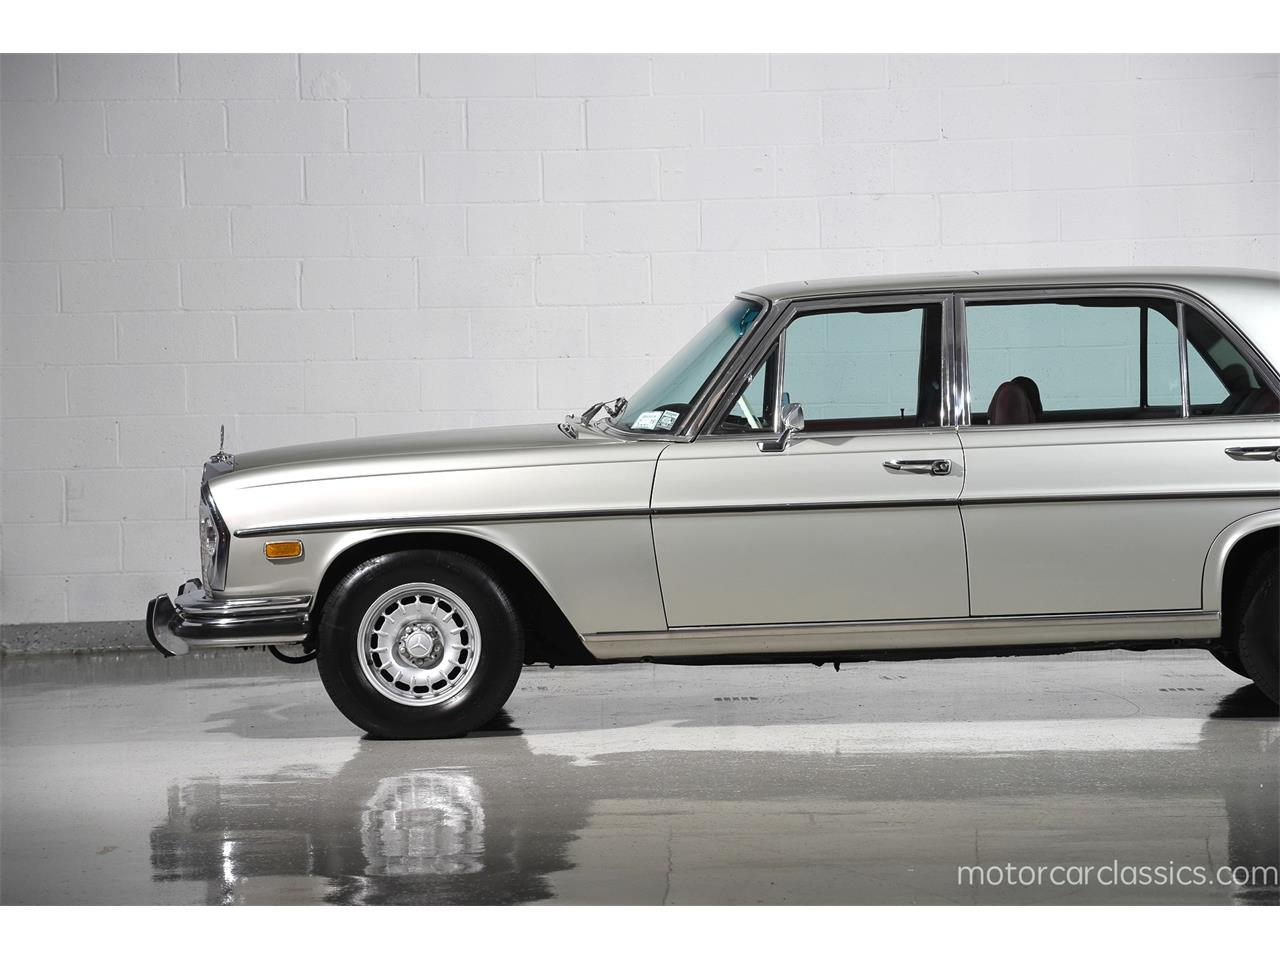 1971 Mercedes-Benz 300SEL for sale in Farmingdale, NY – photo 9